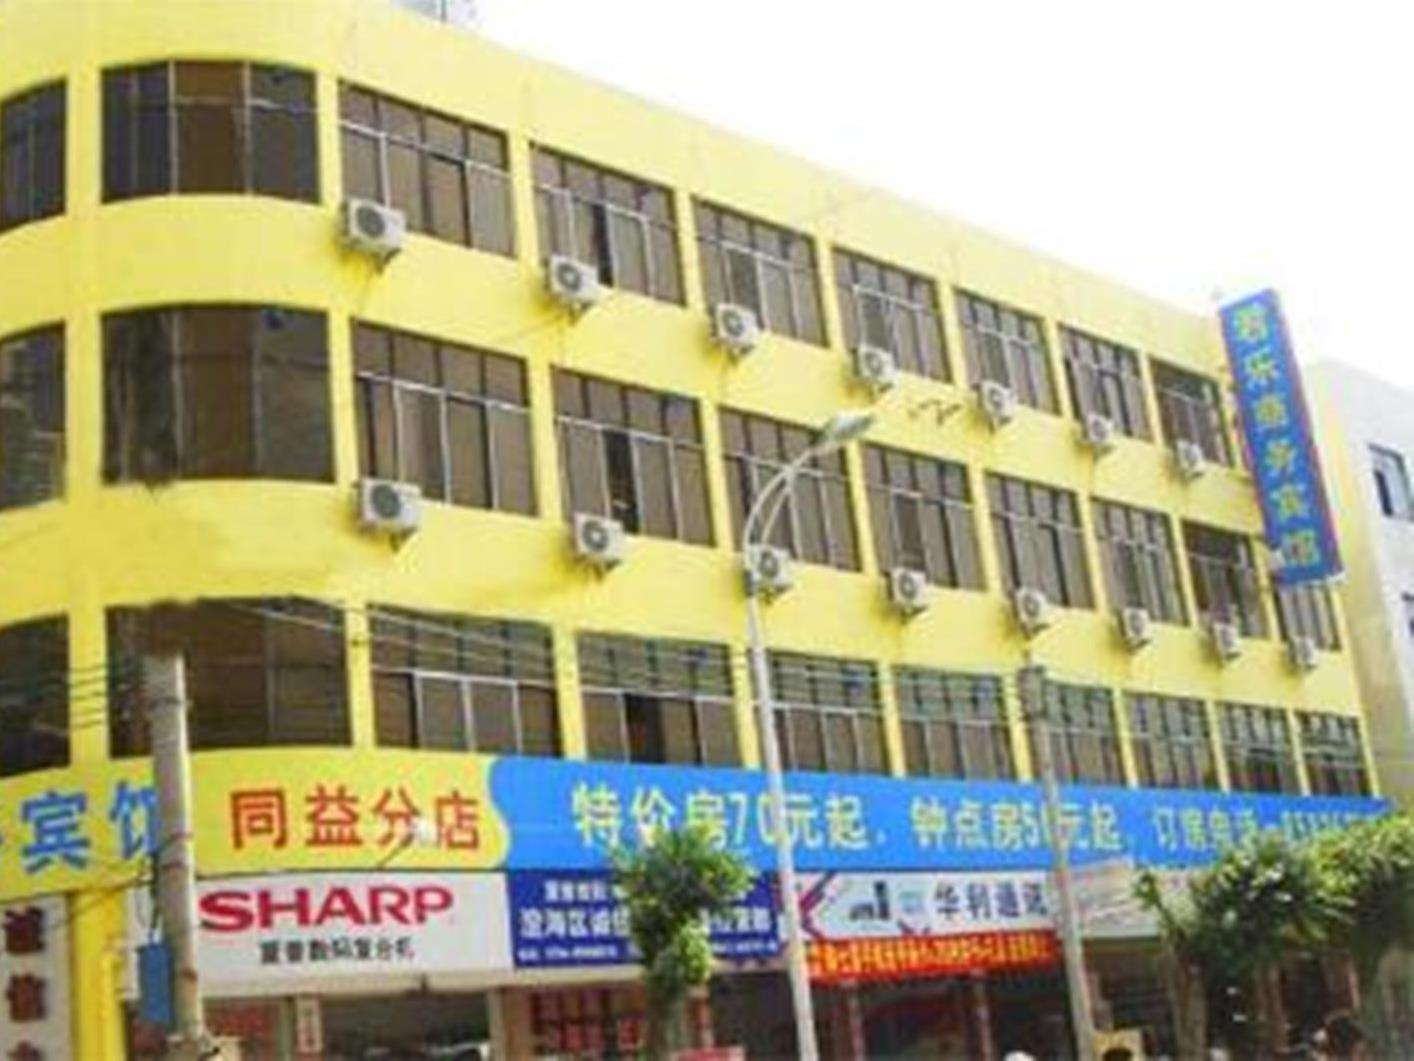 Shantou Jun Yue Business Hotel Tongyi Road Branch, Shantou